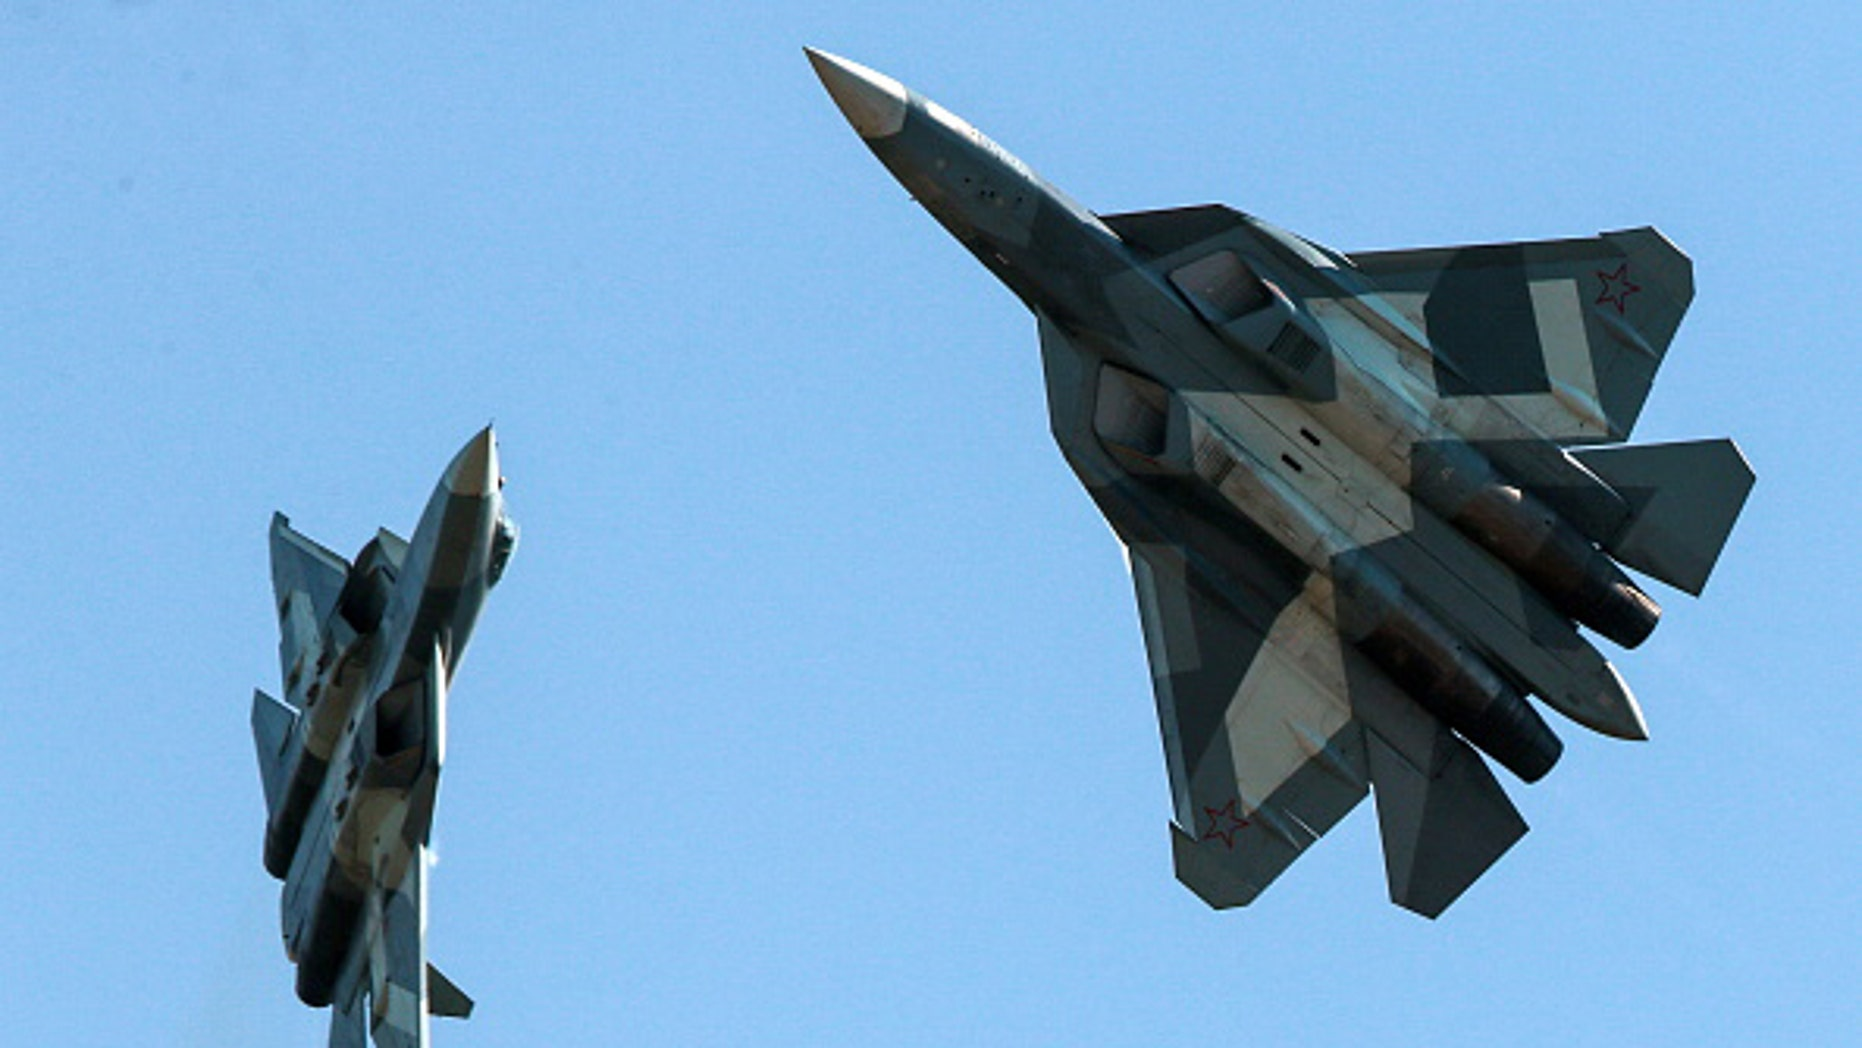 MOSCOW REGION, RUSSIA - AUGUST 12, 2017: Sukhoi Su-57 jet multirole fighter aircraft in flight during an air display event as part of the 2017 Forsazh [Forsage] aviation festival marking the 105th anniversary of the establishment of the Russian Air Force in Patriot Park. Sergei Bobylev/TASS (Photo by Sergei BobylevTASS via Getty Images)